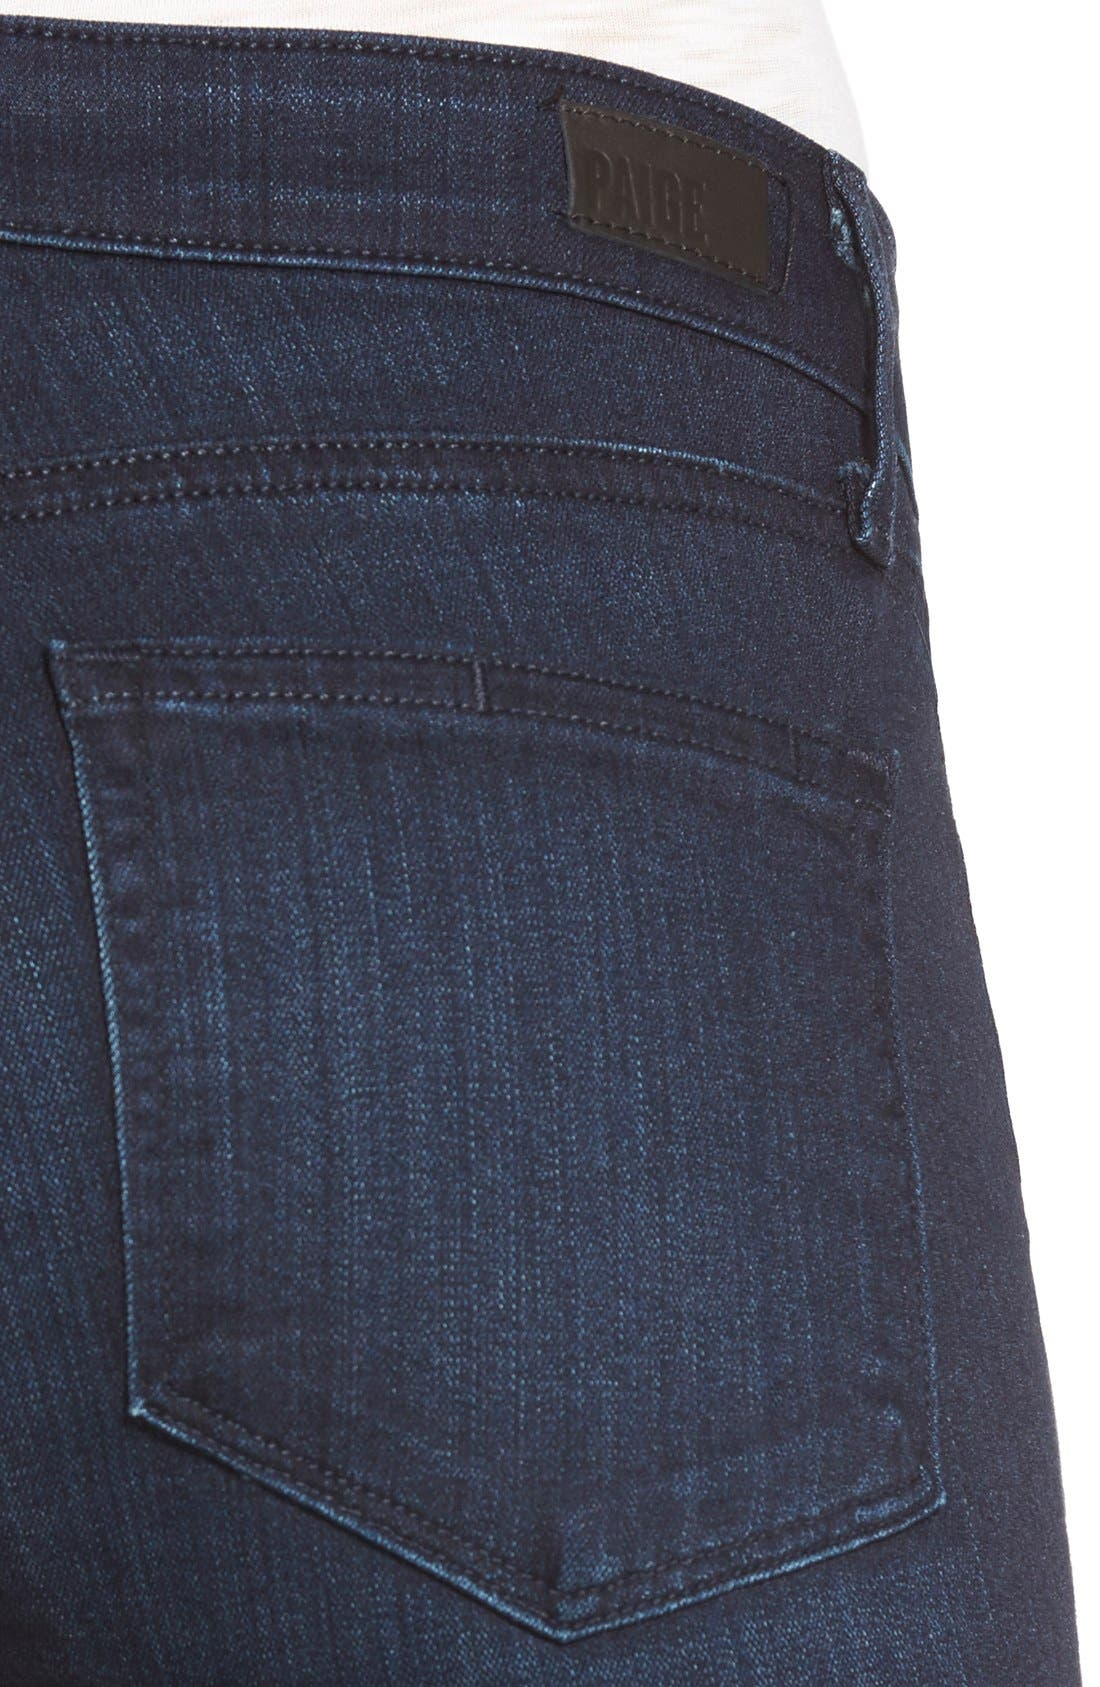 Alternate Image 4  - PAIGE 'Skyline' Skinny Jeans (Everdeen) (Nordstrom Exclusive)